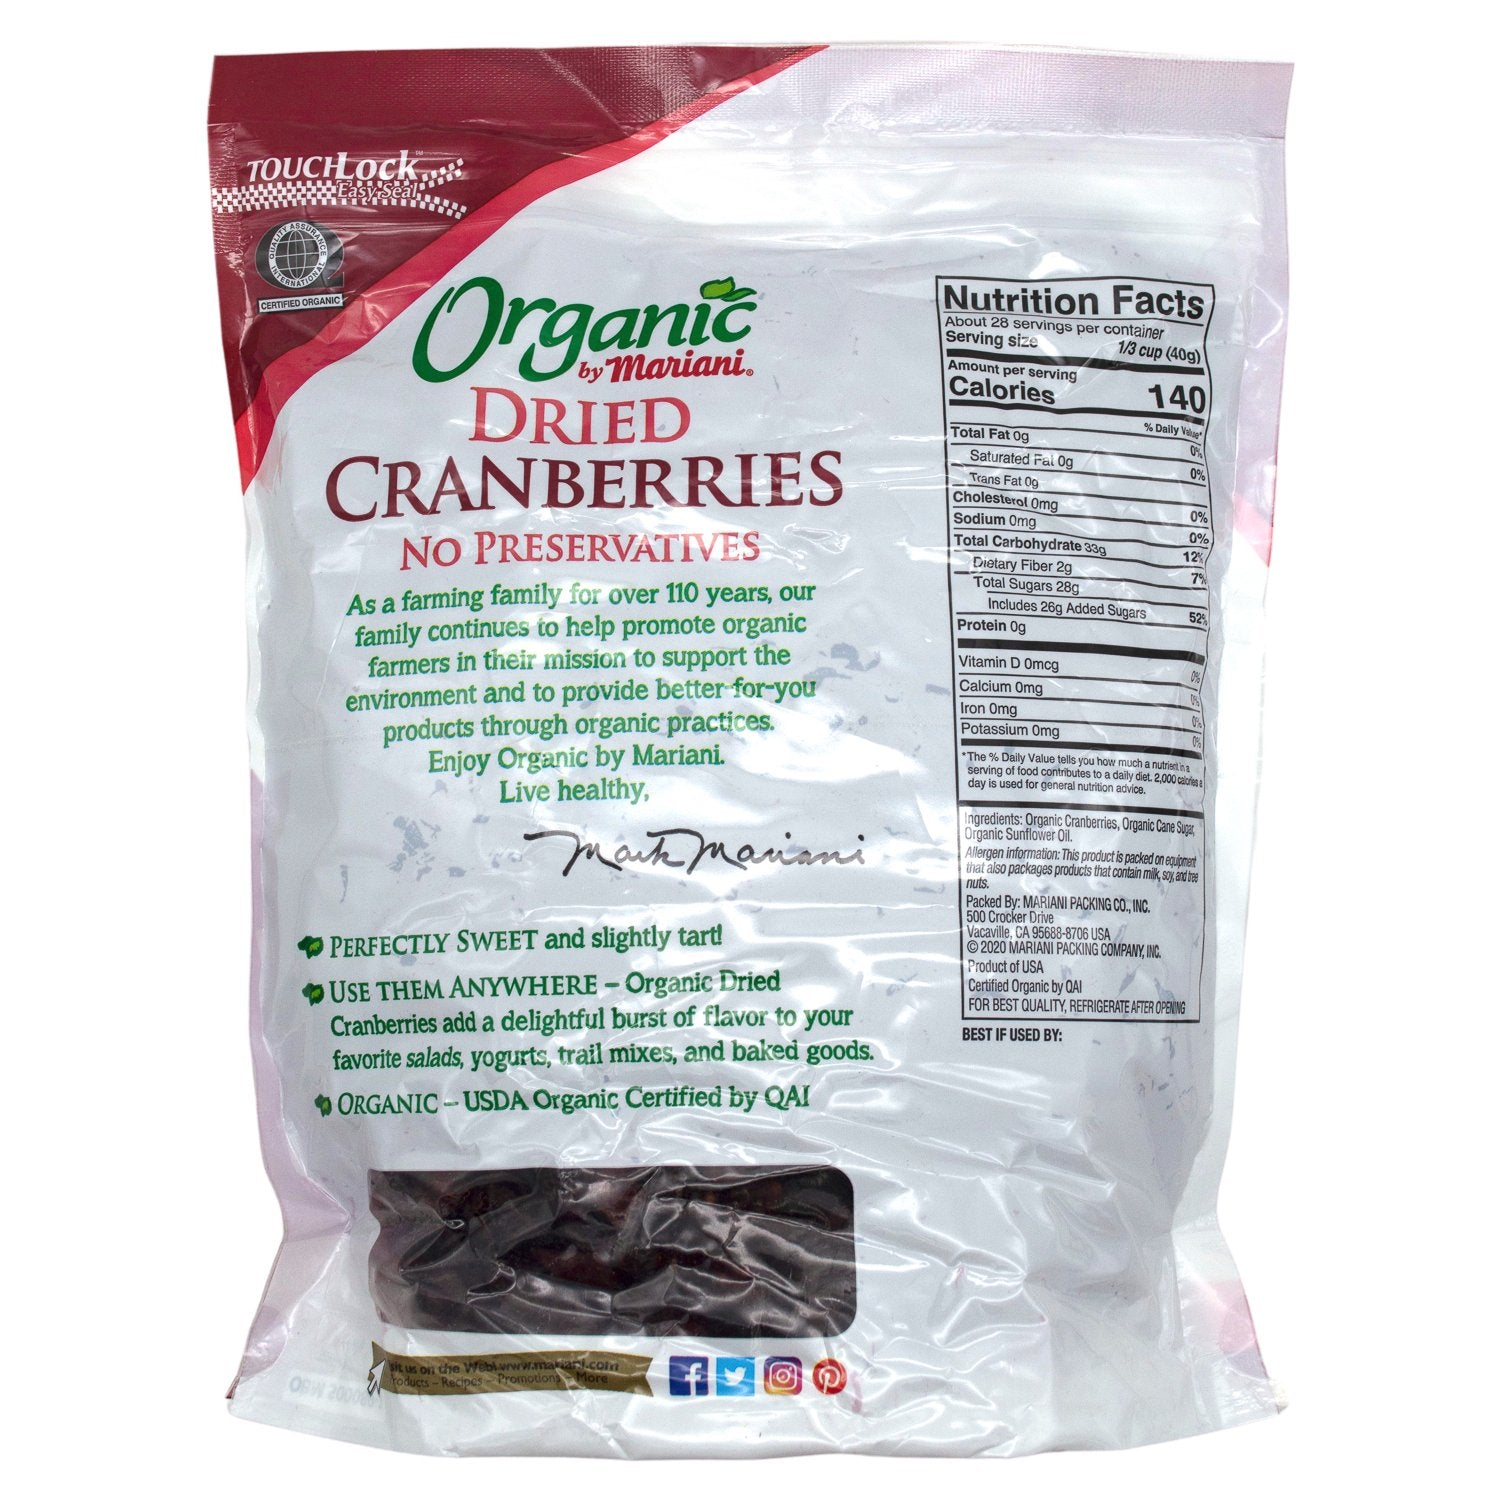 Mariani Organic Dried Cranberries Mariani